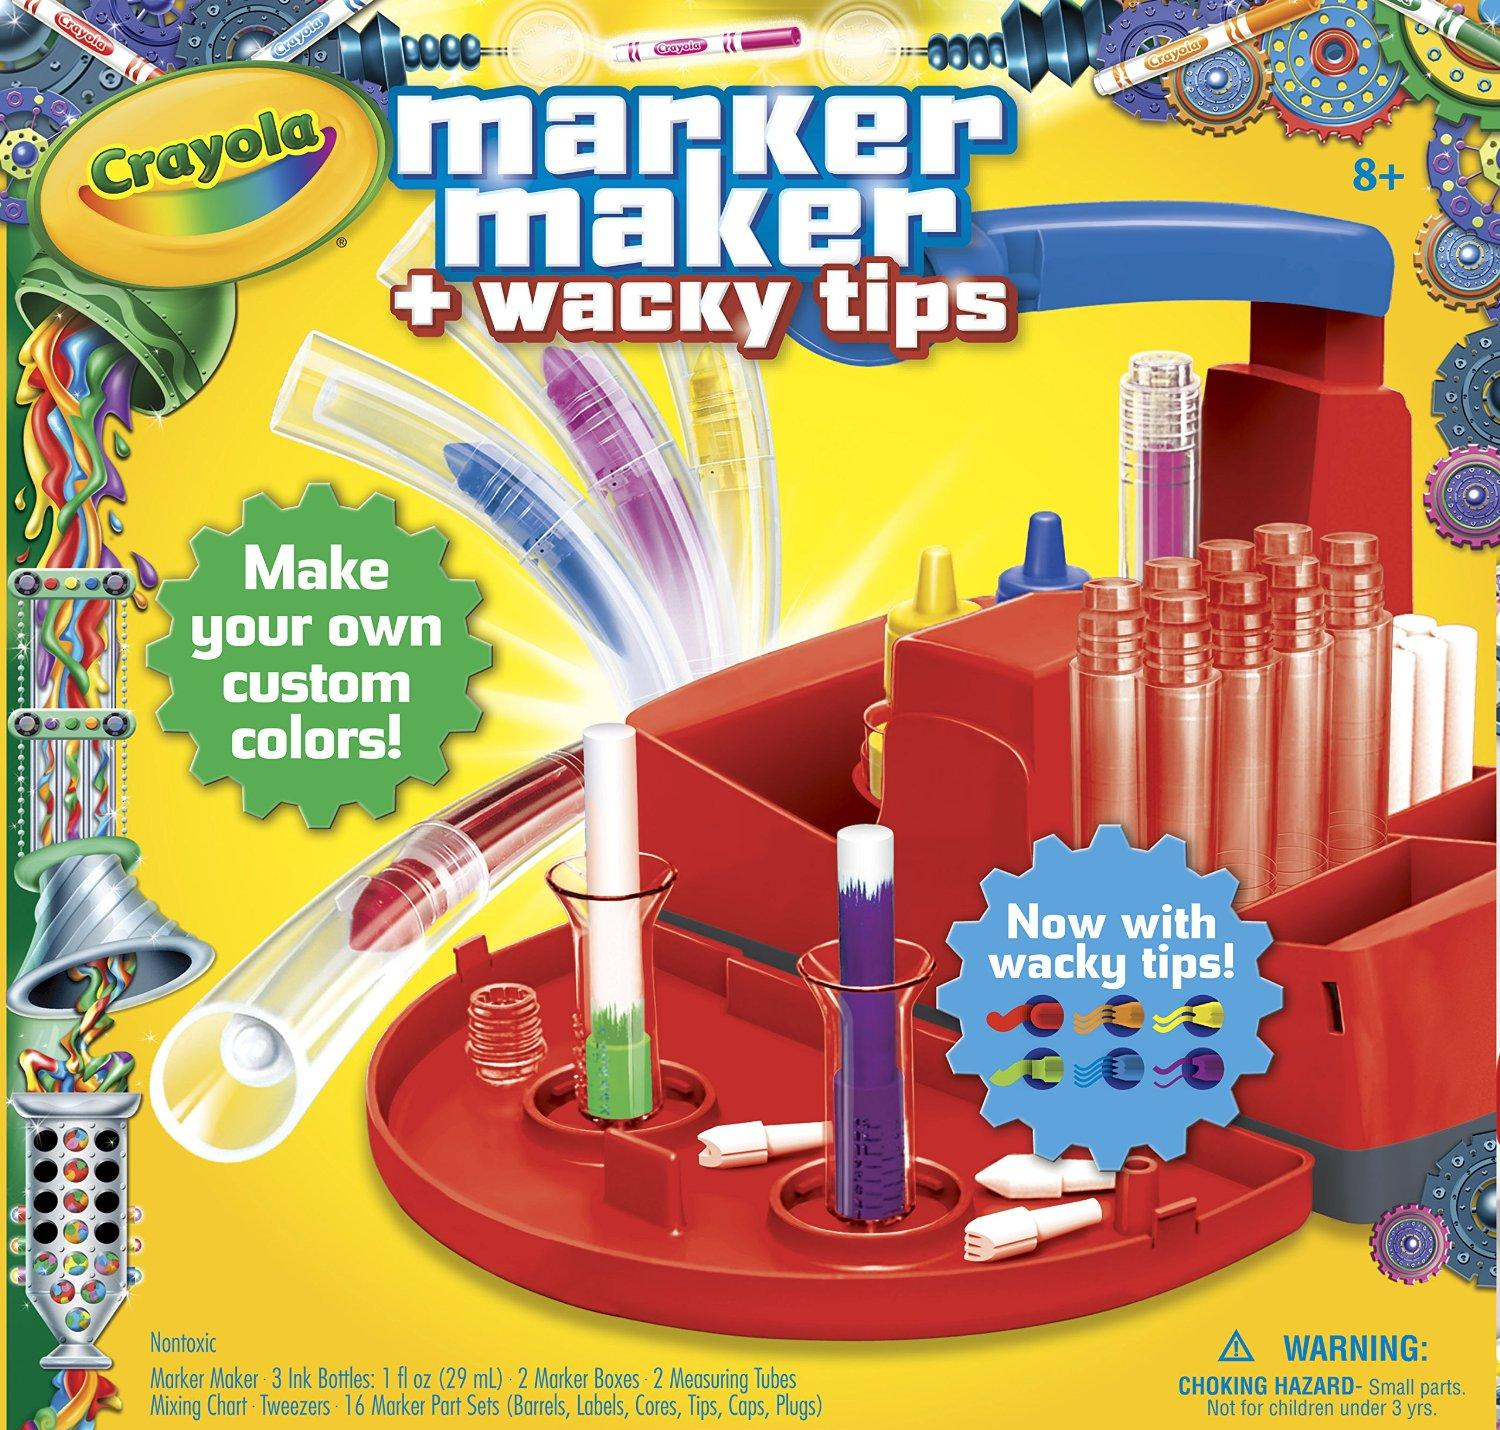 $5.87 #1 Best Seller! Crayola Marker Maker Wacky Tips